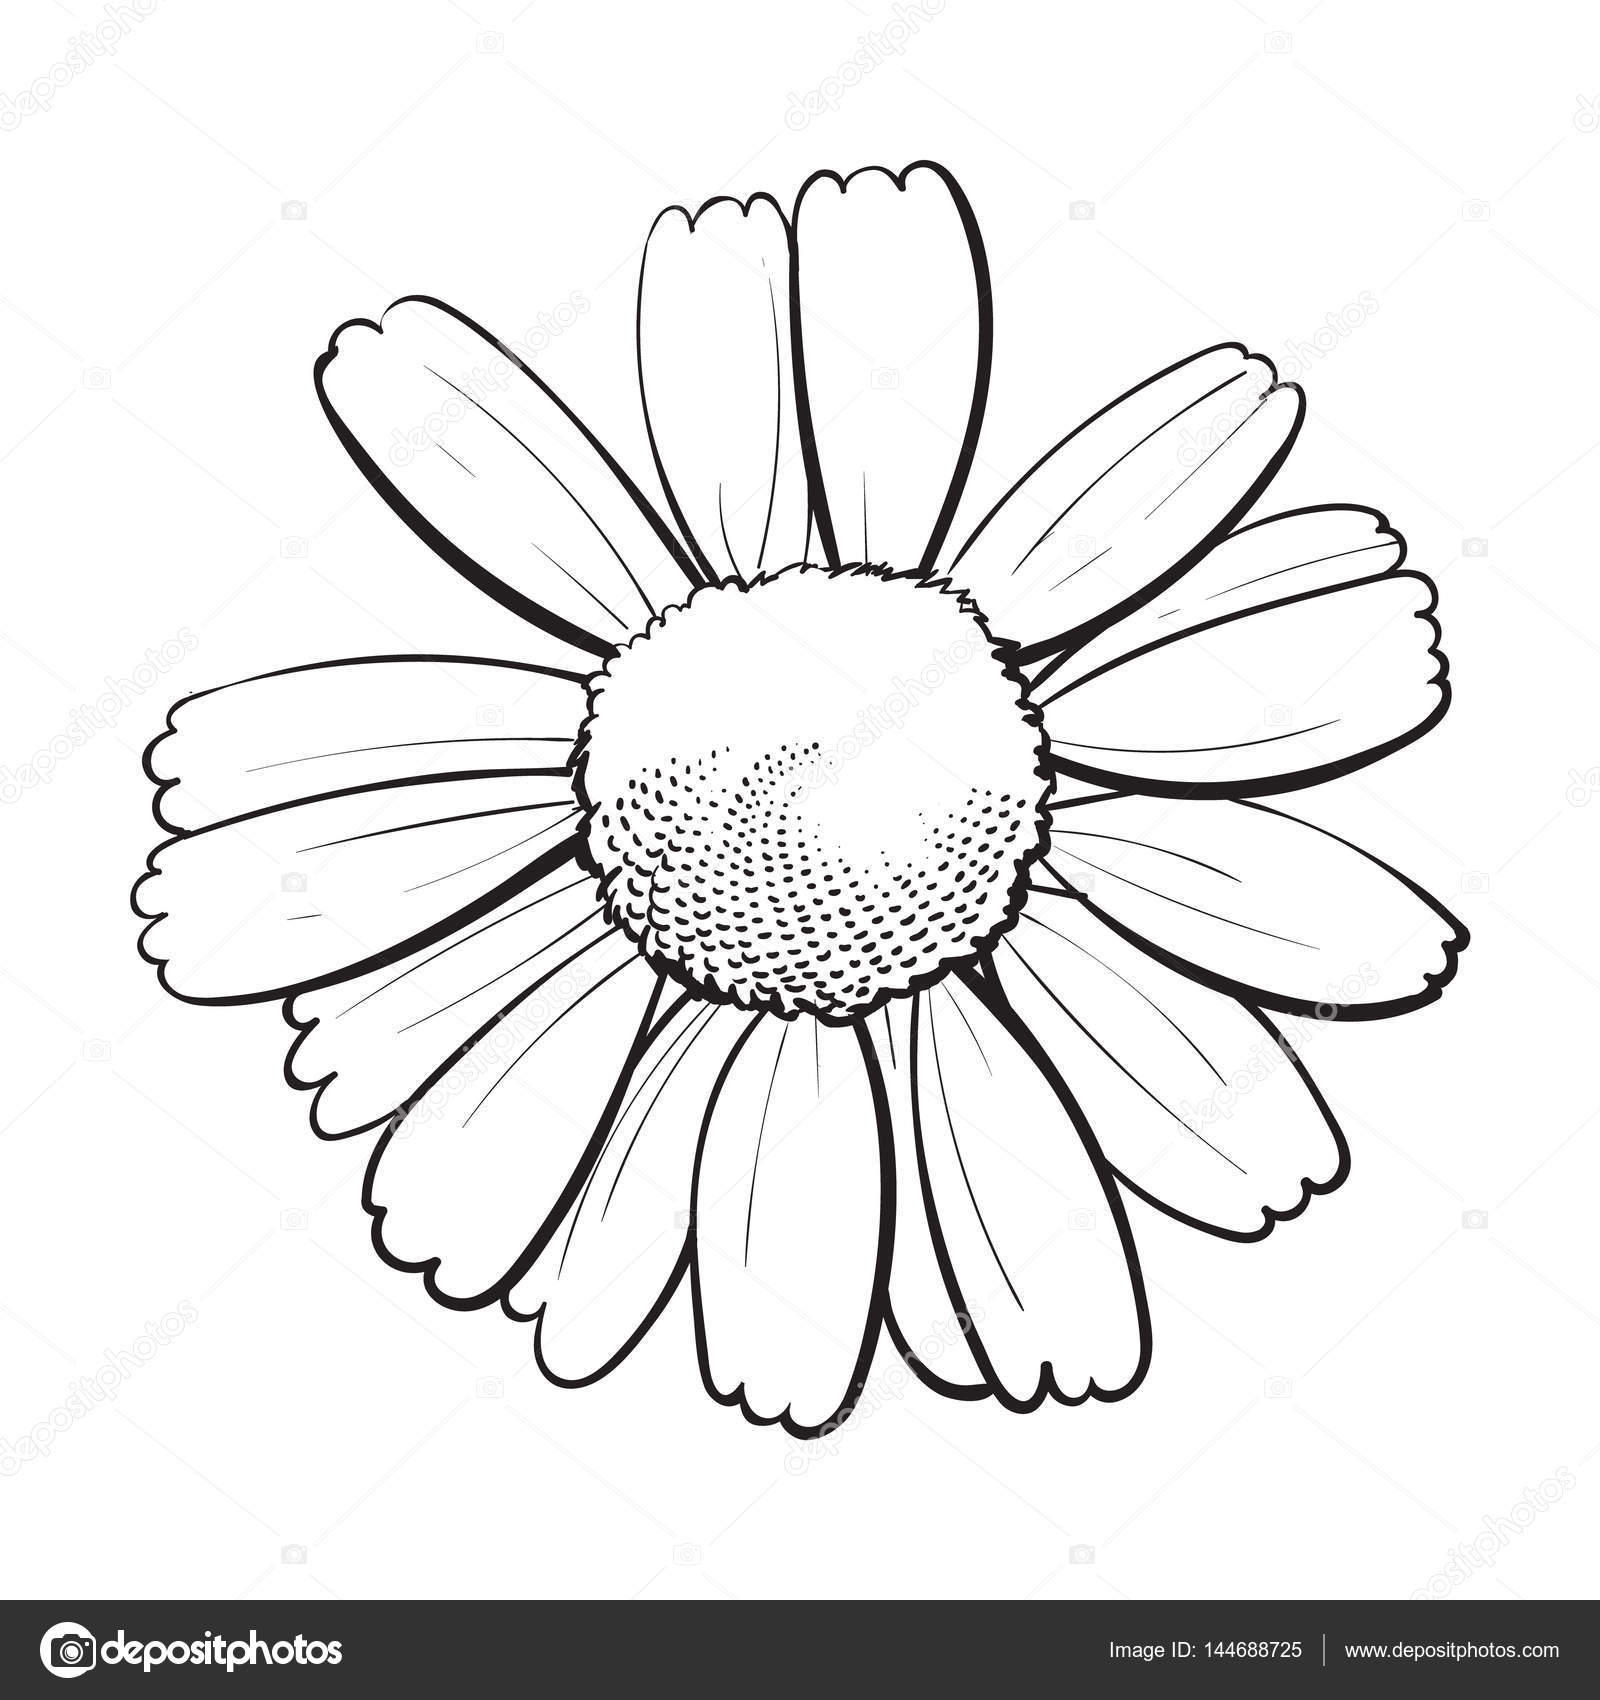 How to draw a daisy, queen of wildflowers 55